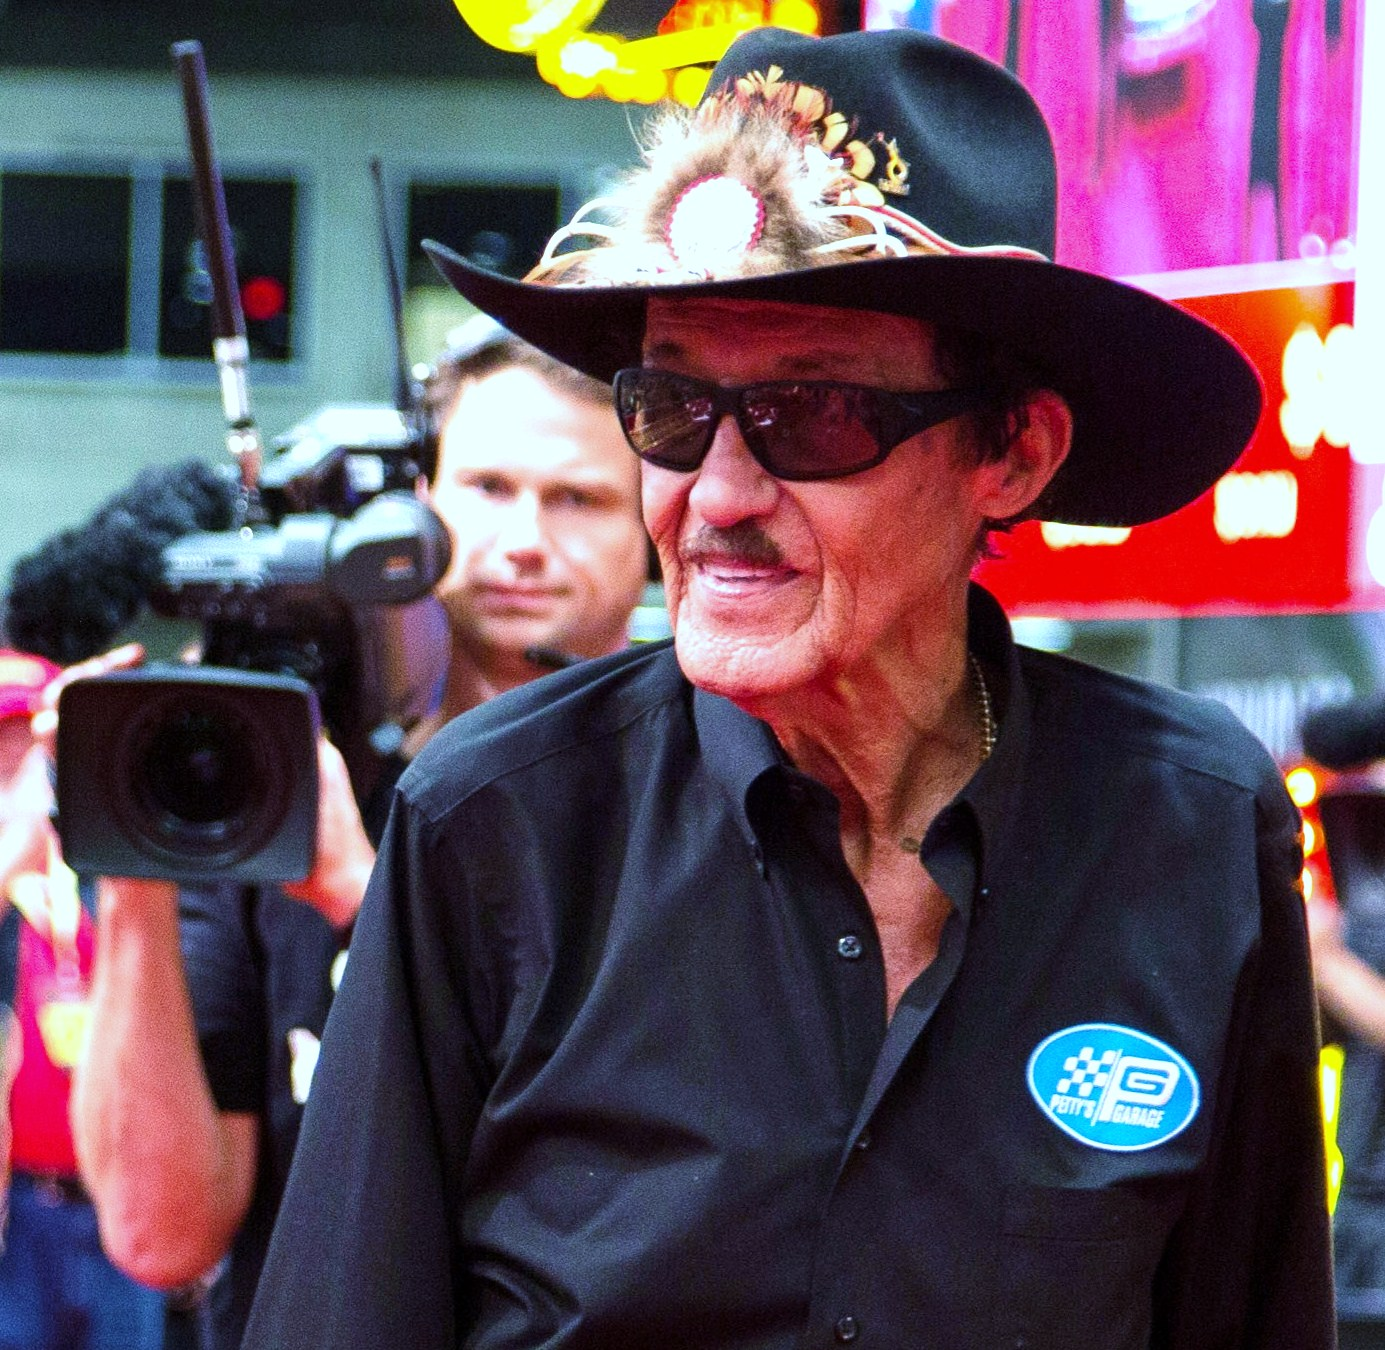 Richard Petty For Sale: Richard Petty Charity Mustang Sale Wows Mecum's Dallas